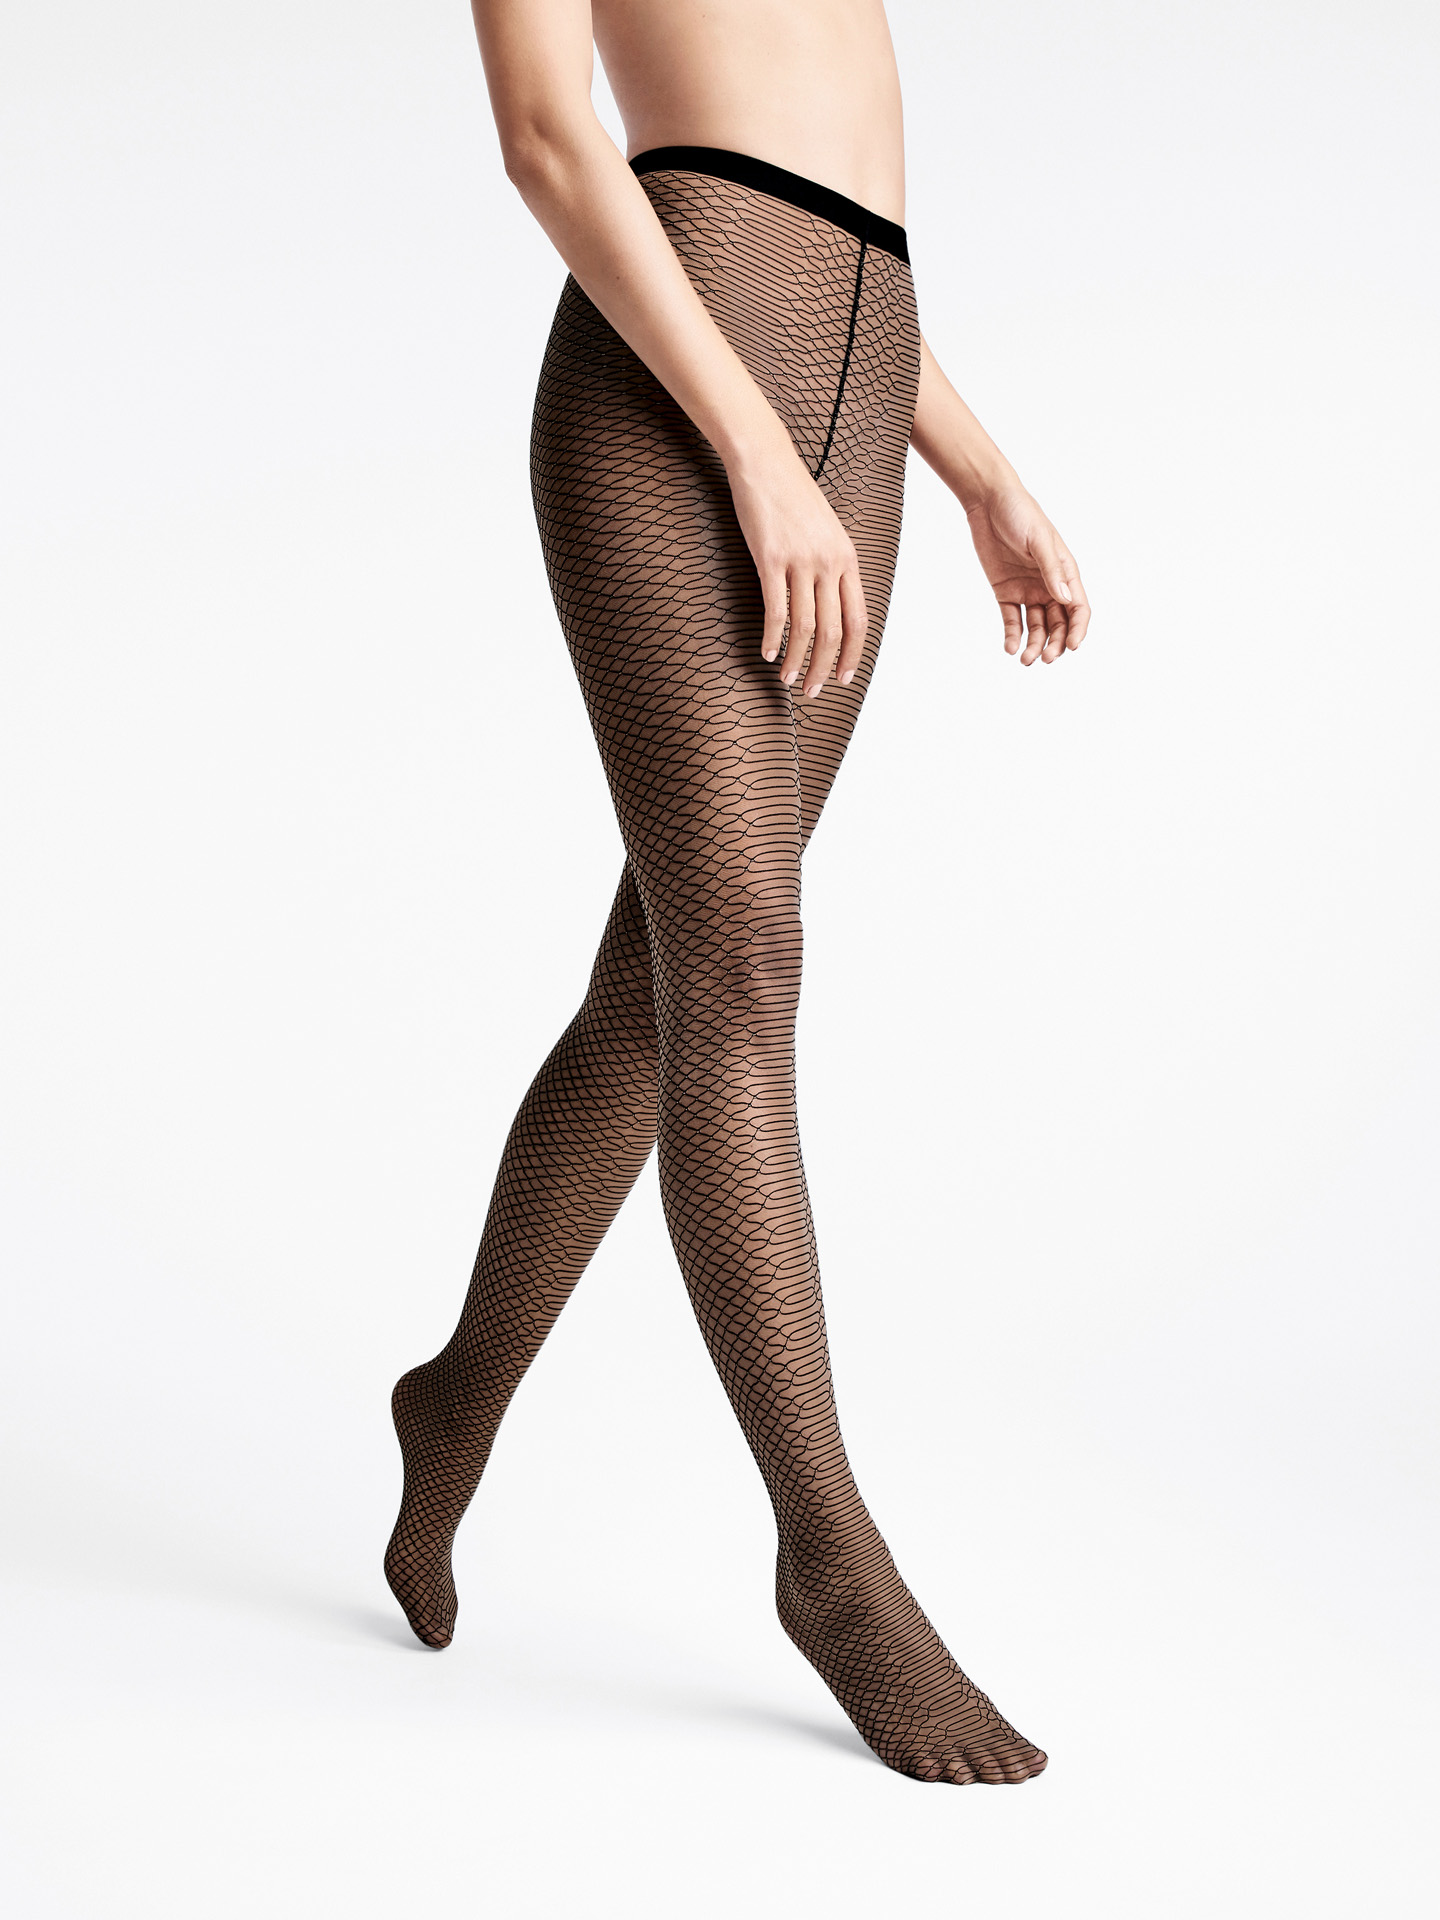 Diamond Snake Tights - black/black - S | Sportbekleidung > Sporthosen > Tights | Wolford